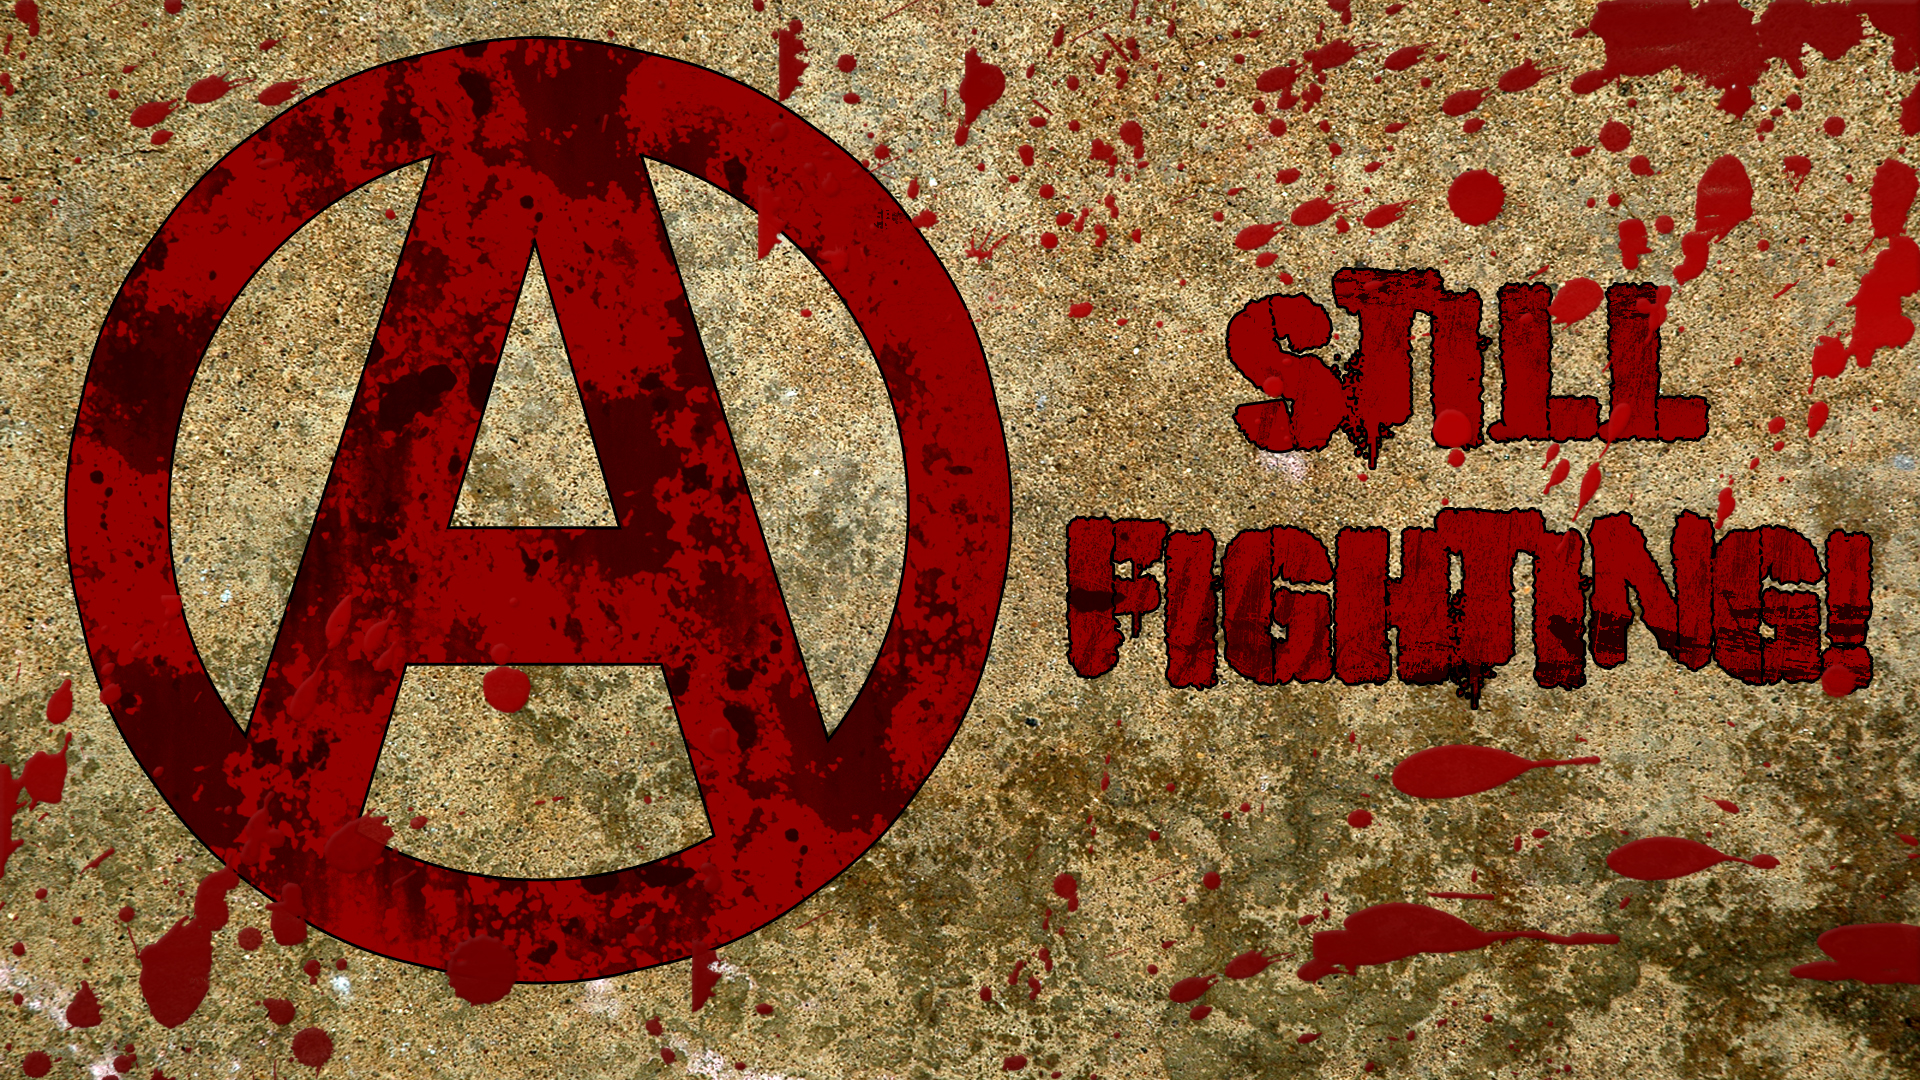 Anarchy Hd Wallpaper By Kubus1462 On Deviantart